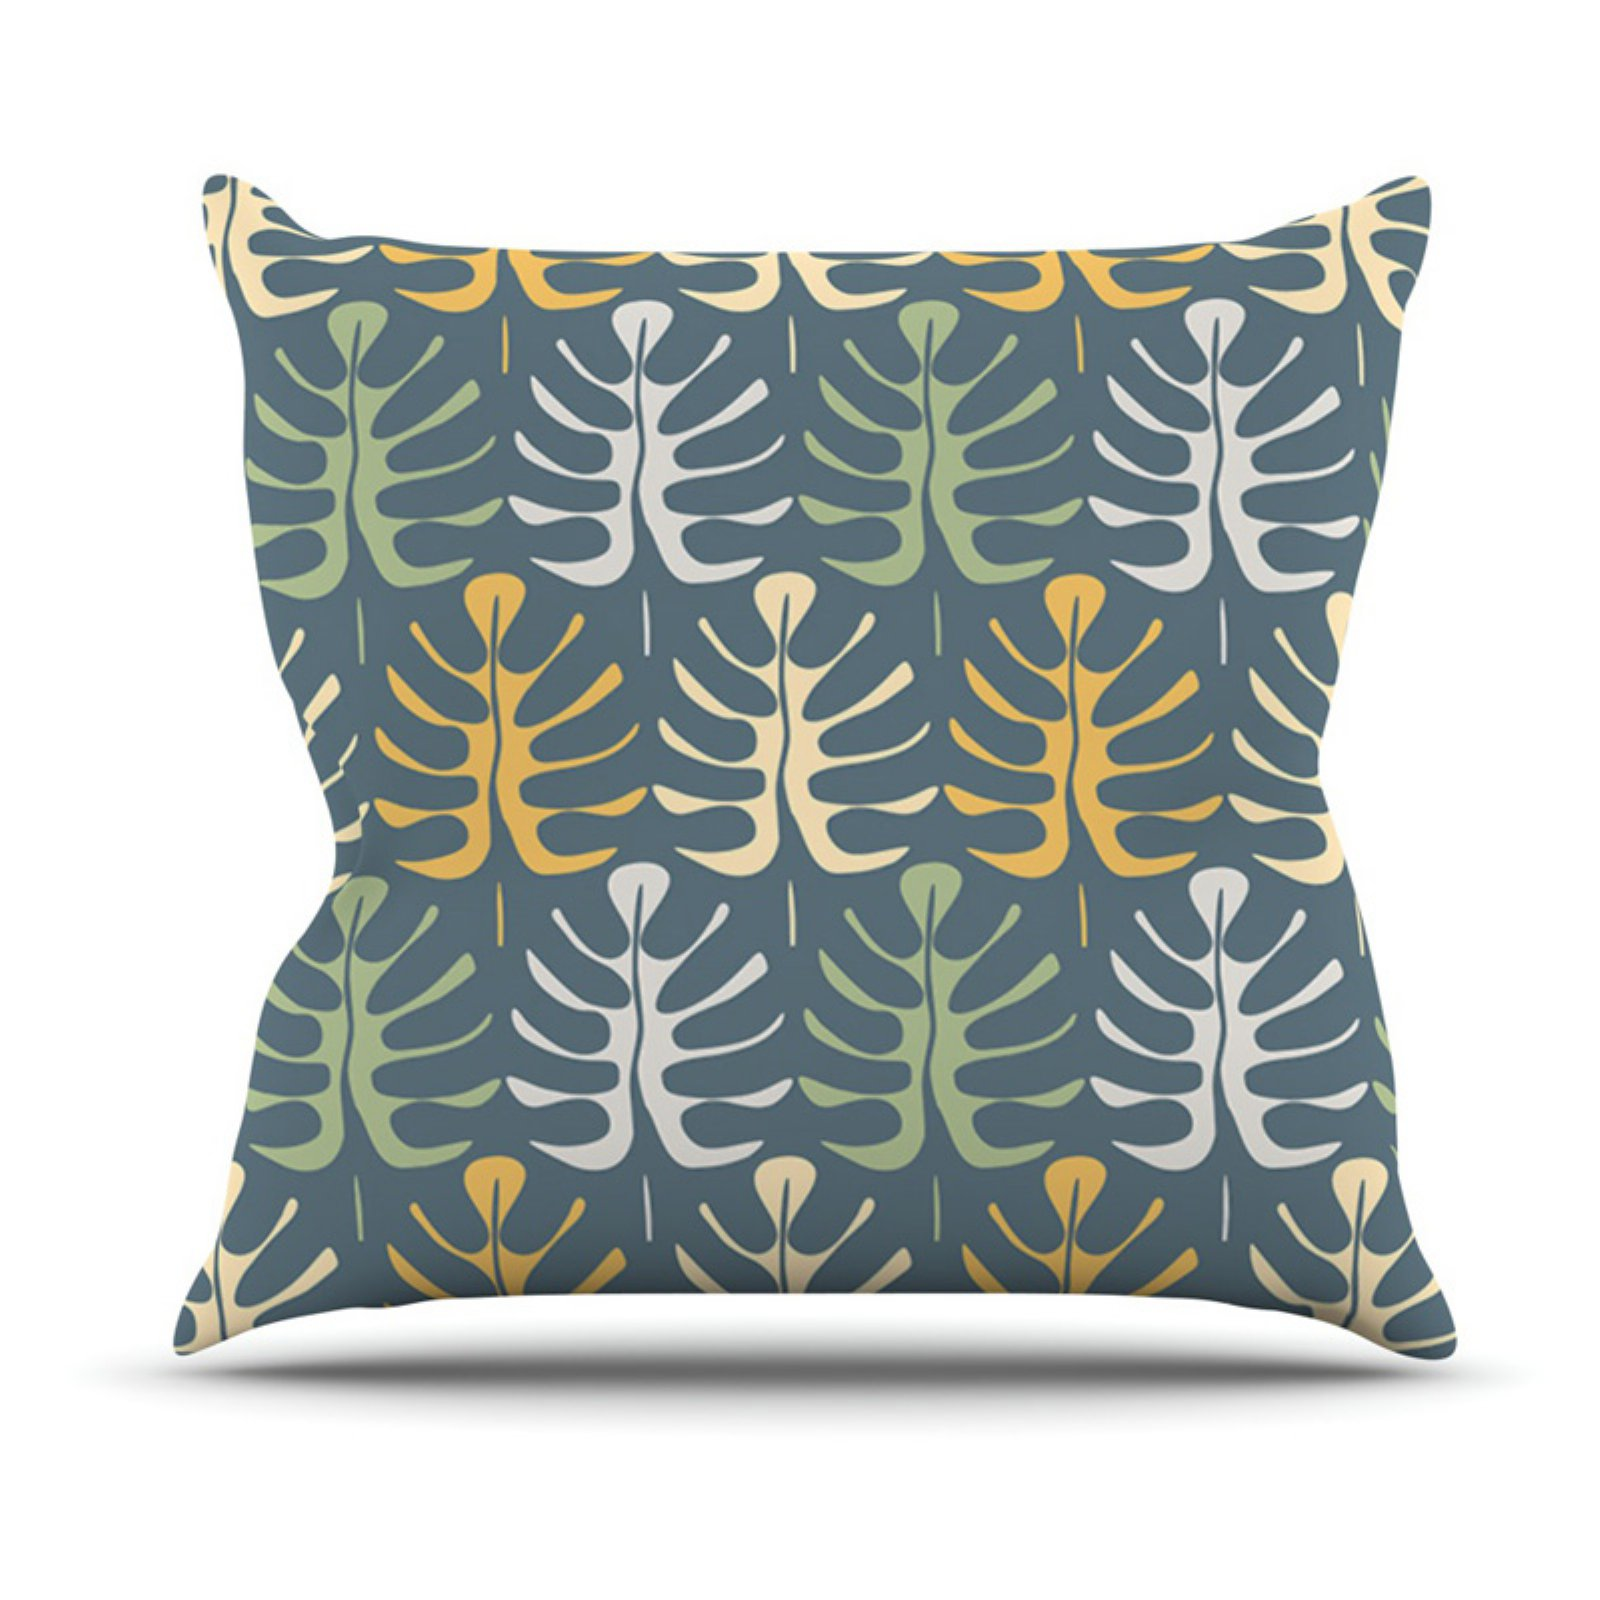 Kess InHouse Julia Grifol My Leaves on Blue Outdoor Throw Pillow